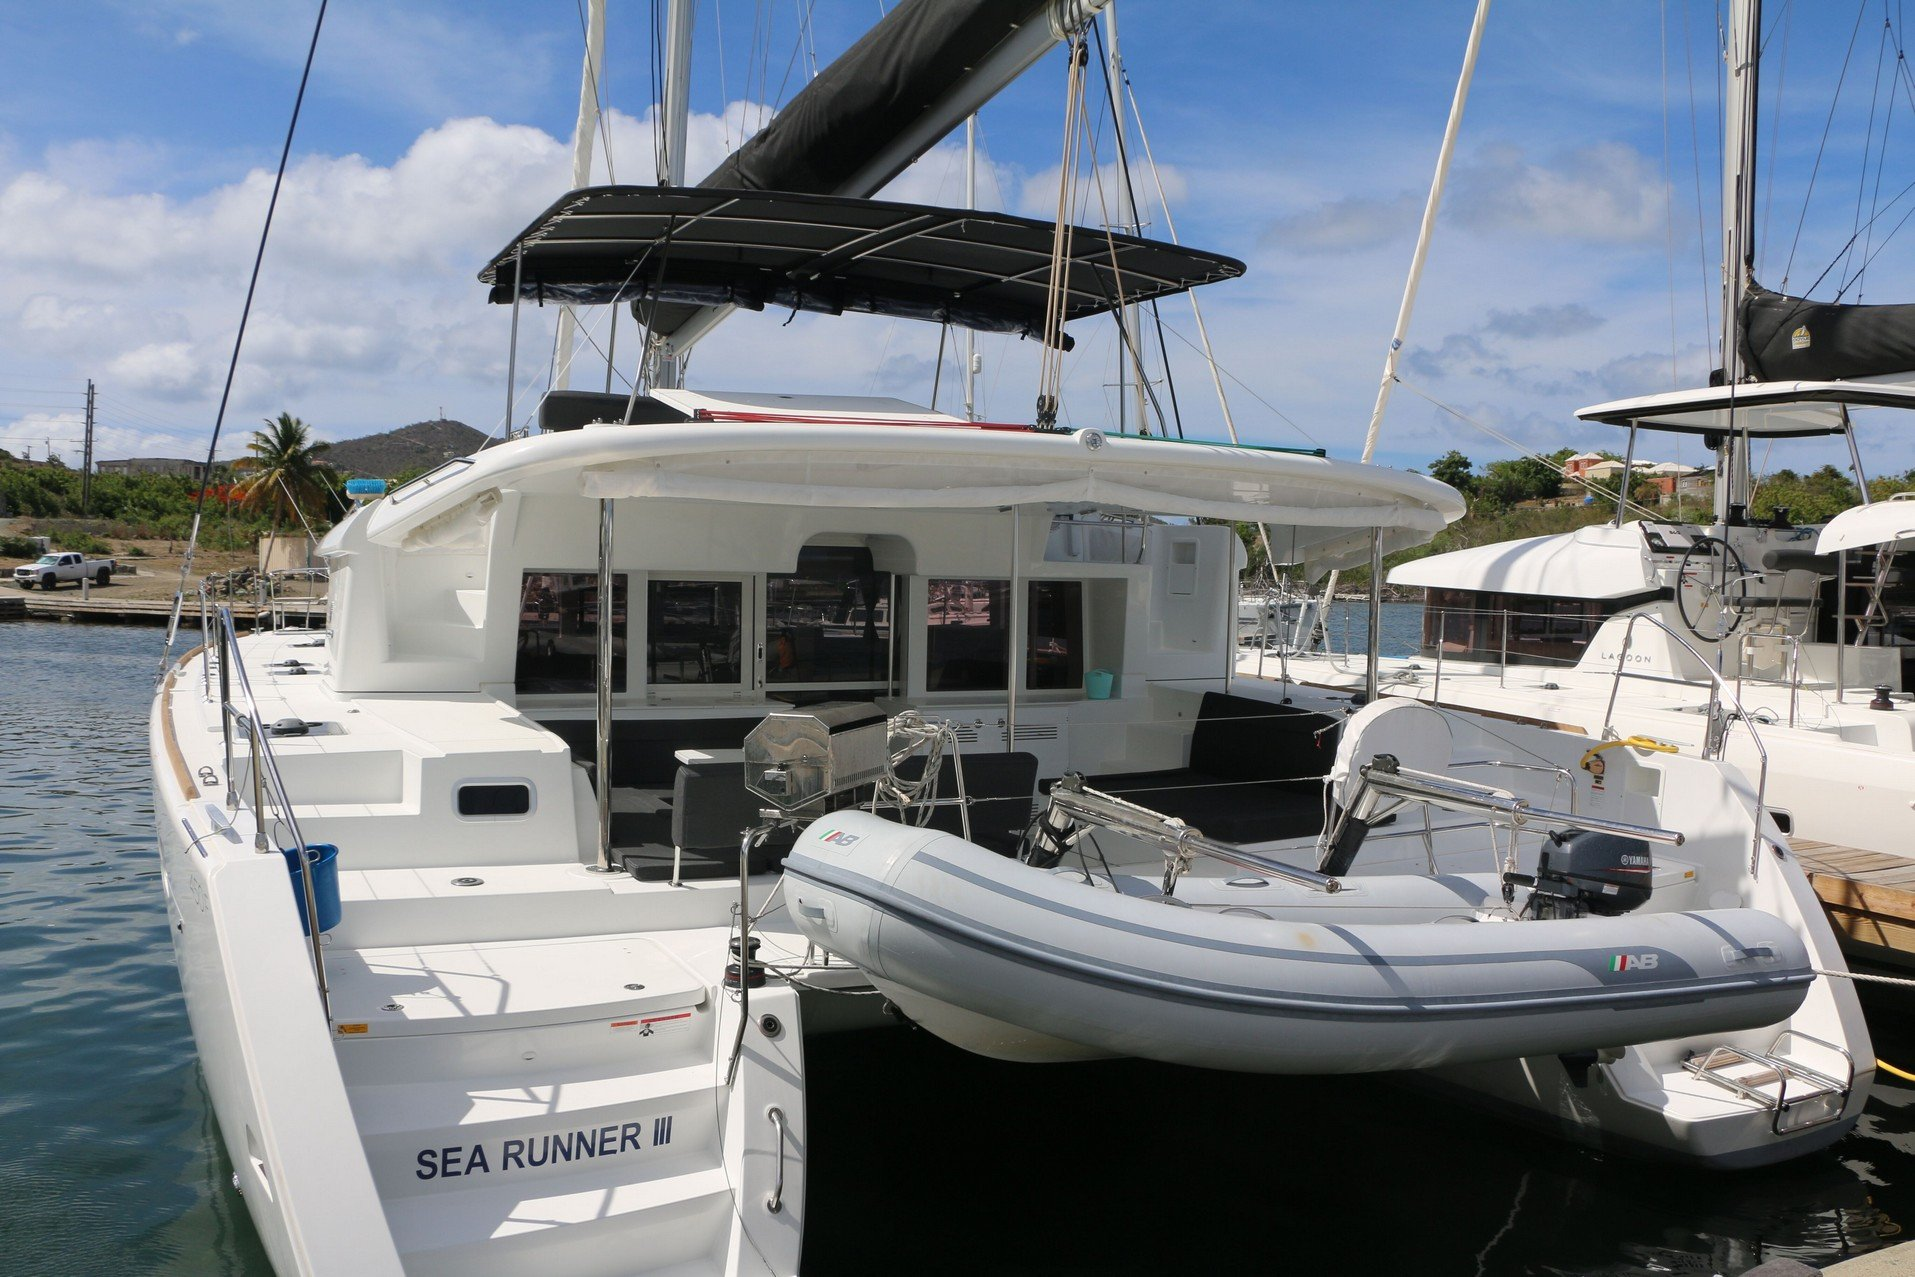 Lagoon 450 (Sea Runner III)  - 3